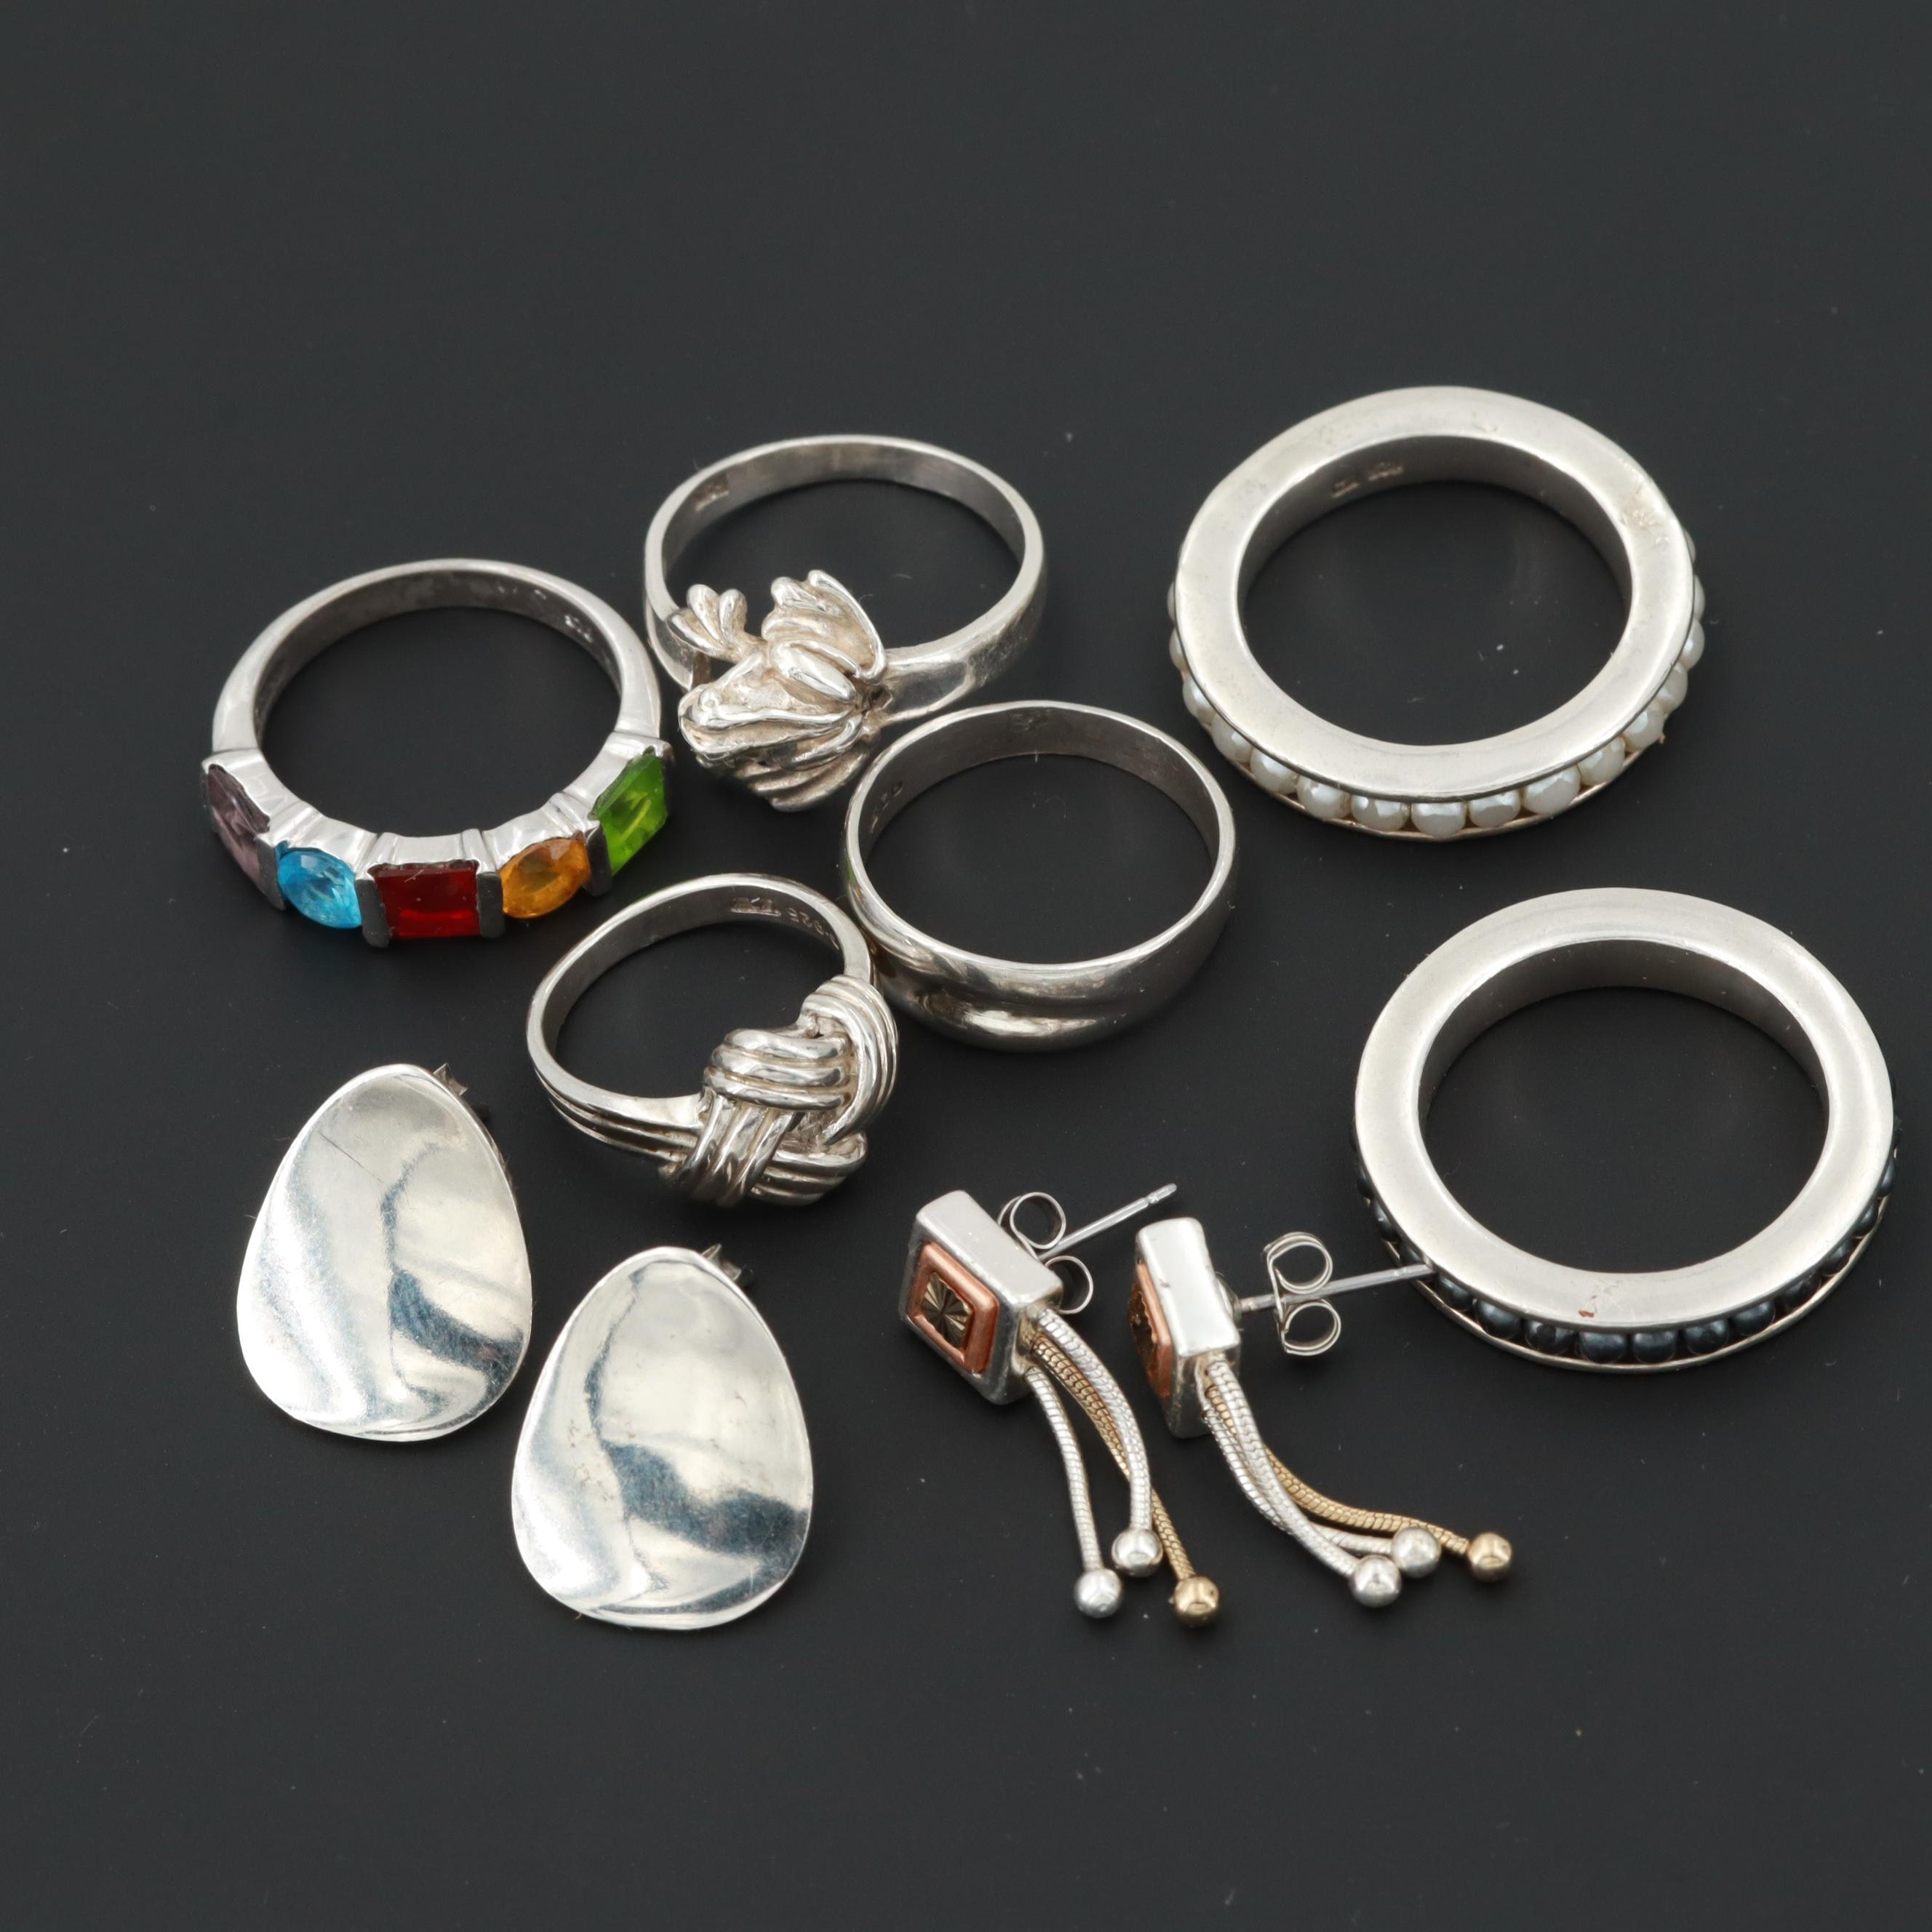 Sterling Silver and Silver Tone Rings and Earrings with Imitation Pearl